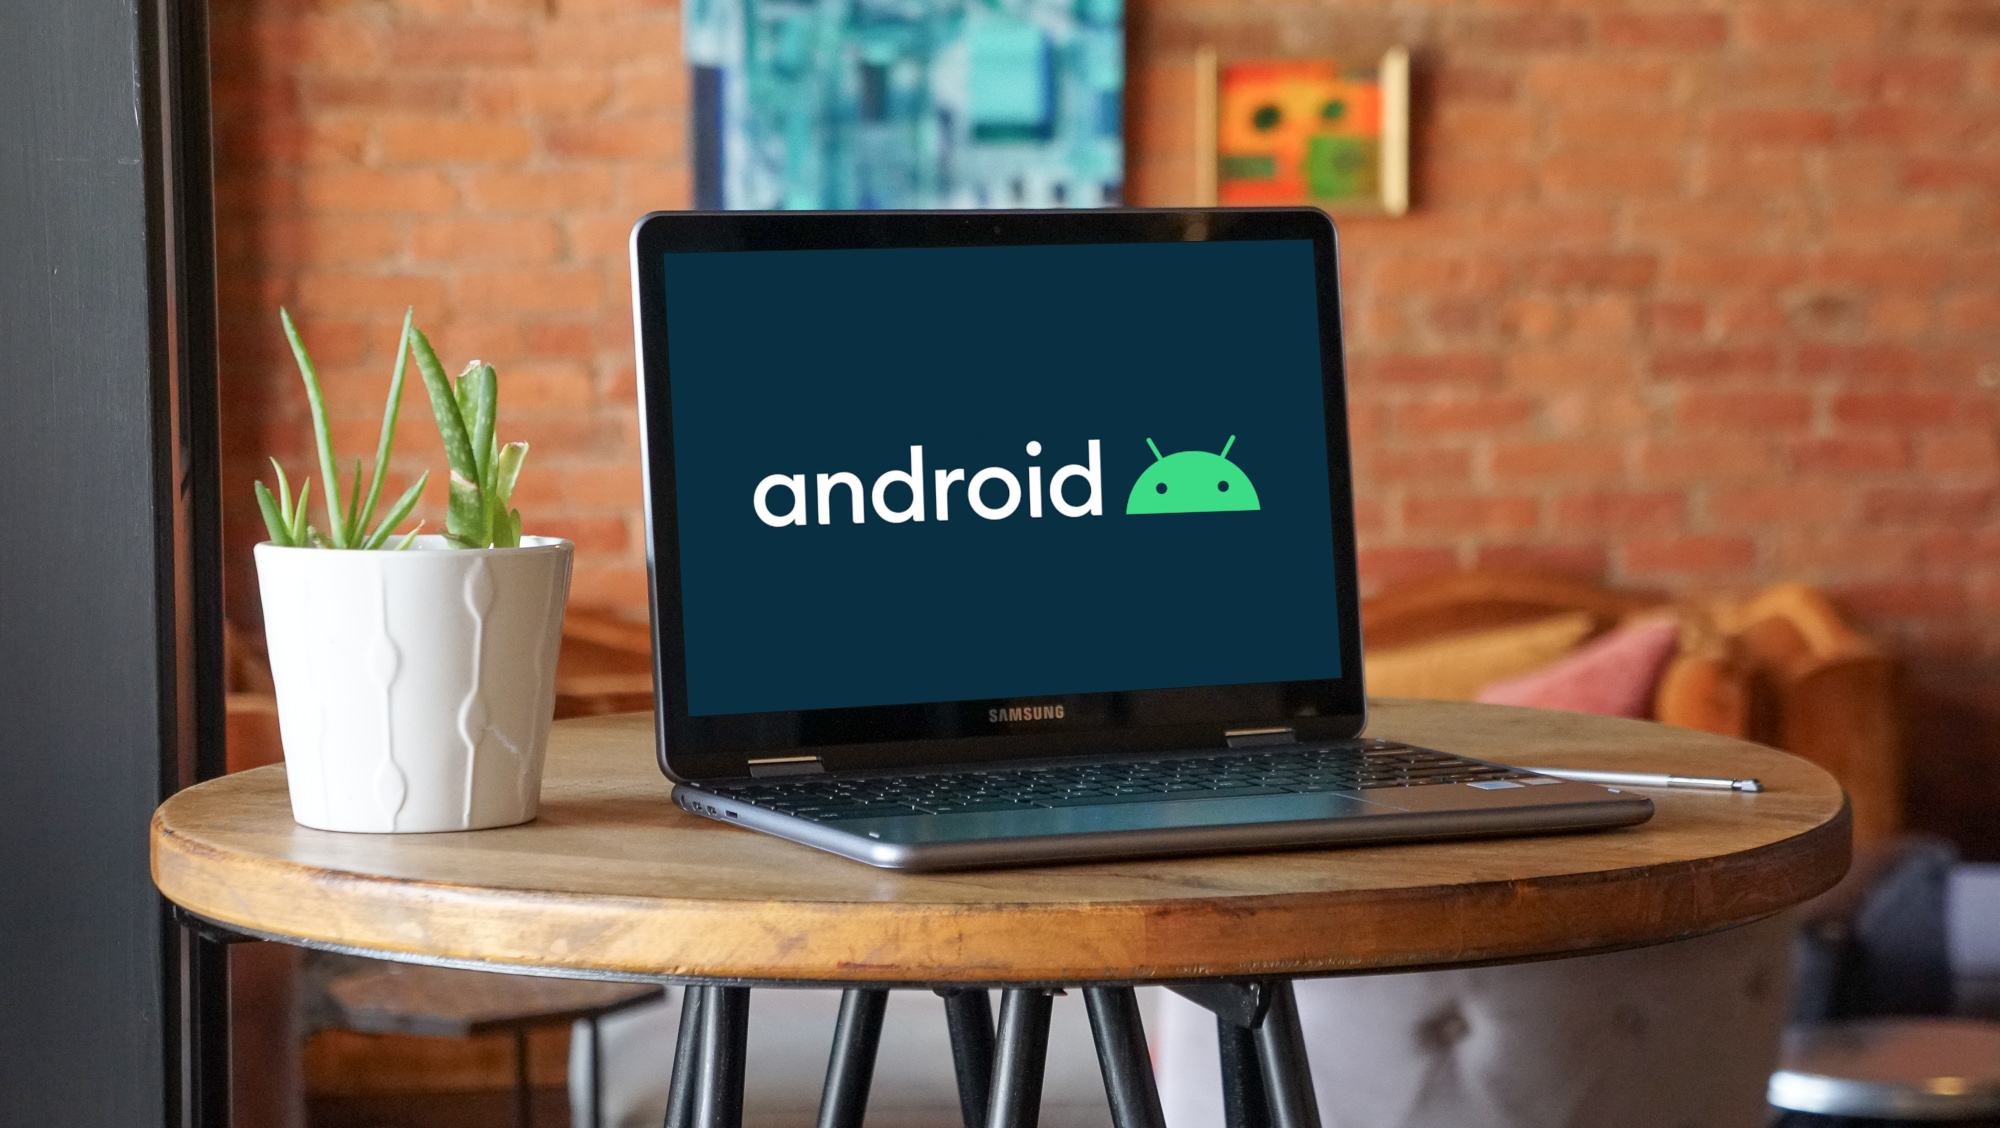 Android 10 (Q) looks to be coming to Chromebooks very soon